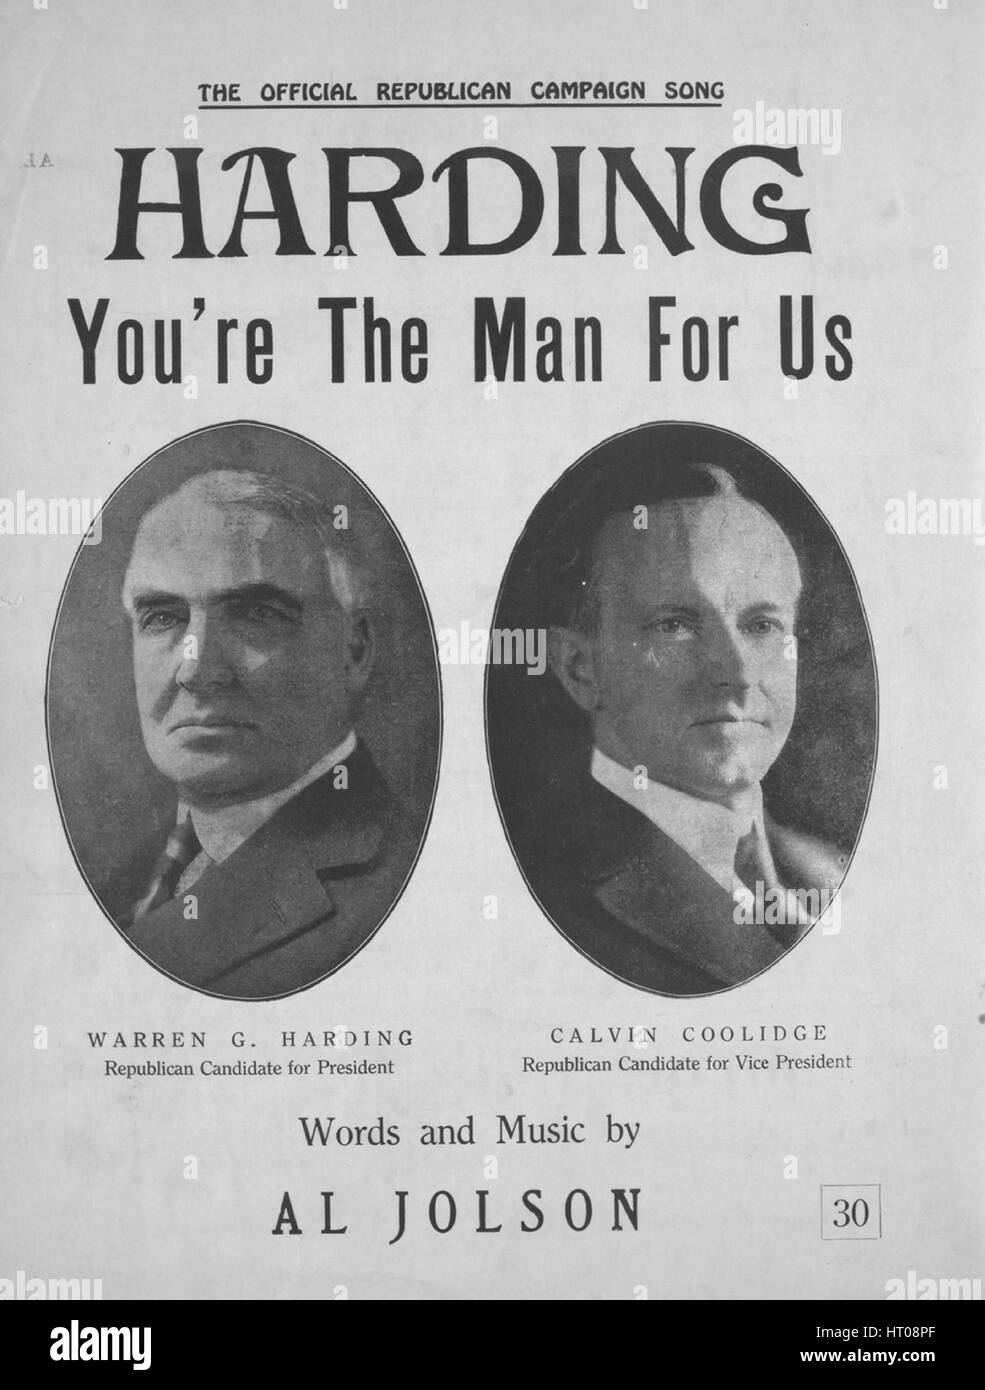 Sheet music cover image of the song 'Harding You're the Man for Us The Official Republican Campaign Song', - Stock Image